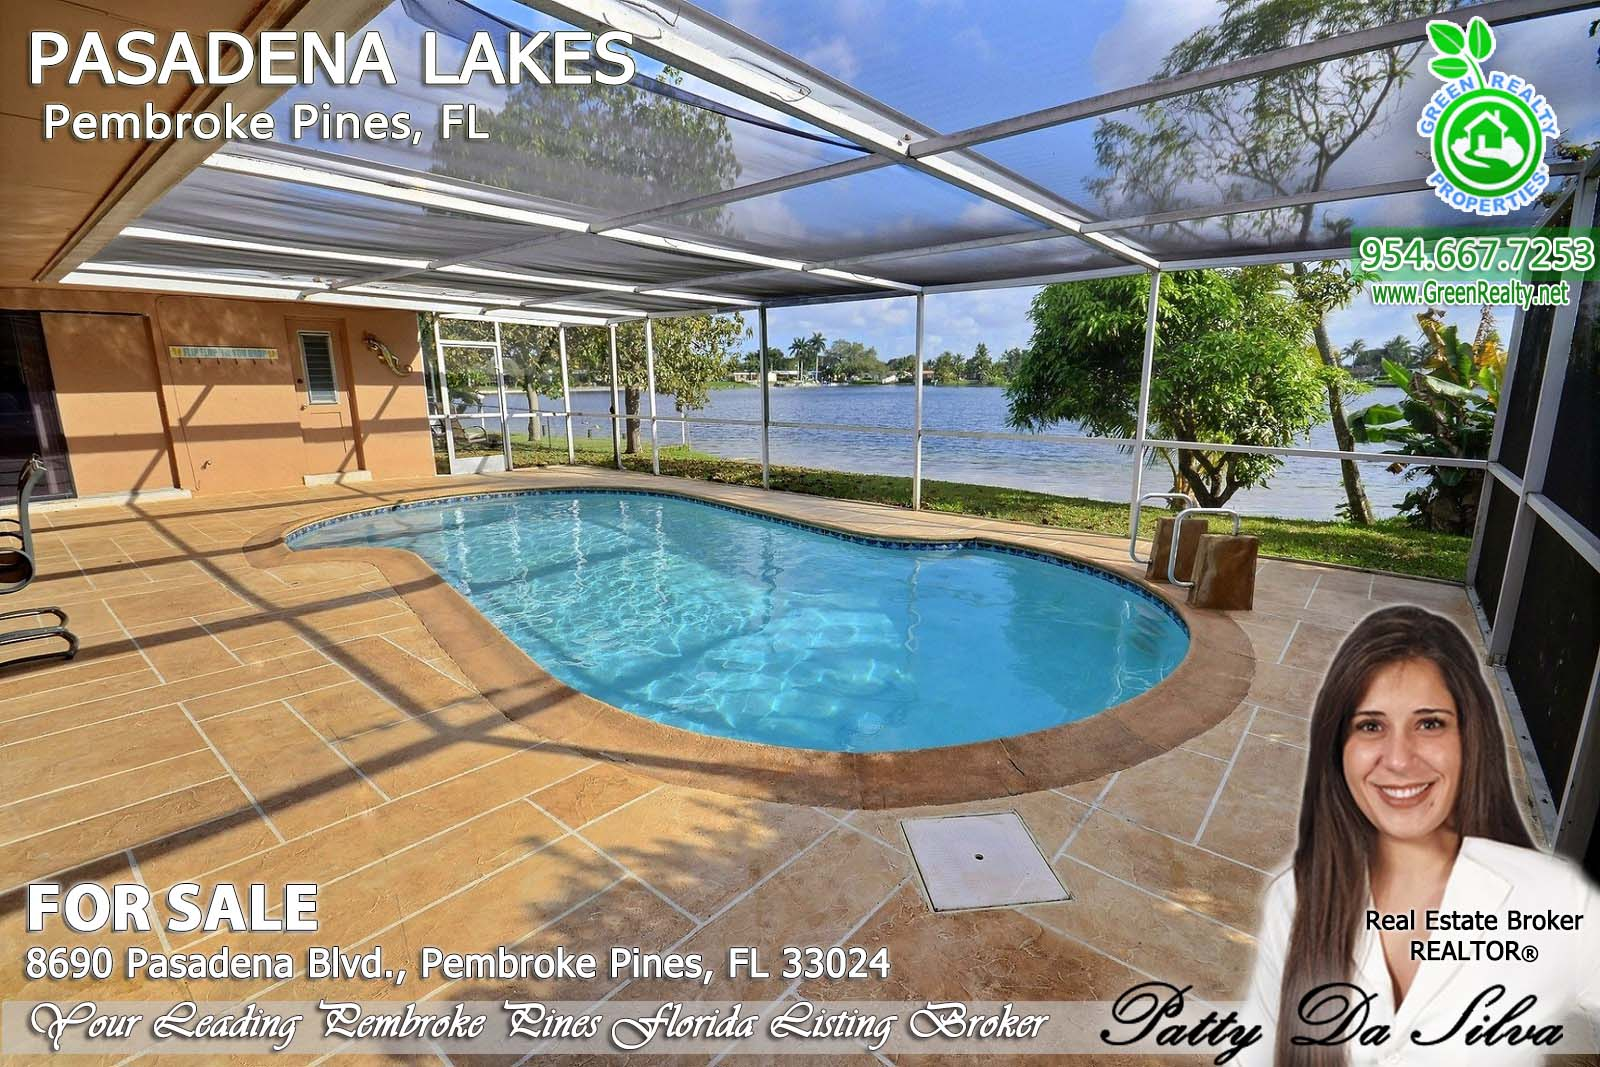 Pasadena Lakes Real Estate Patty Da Silva (3)